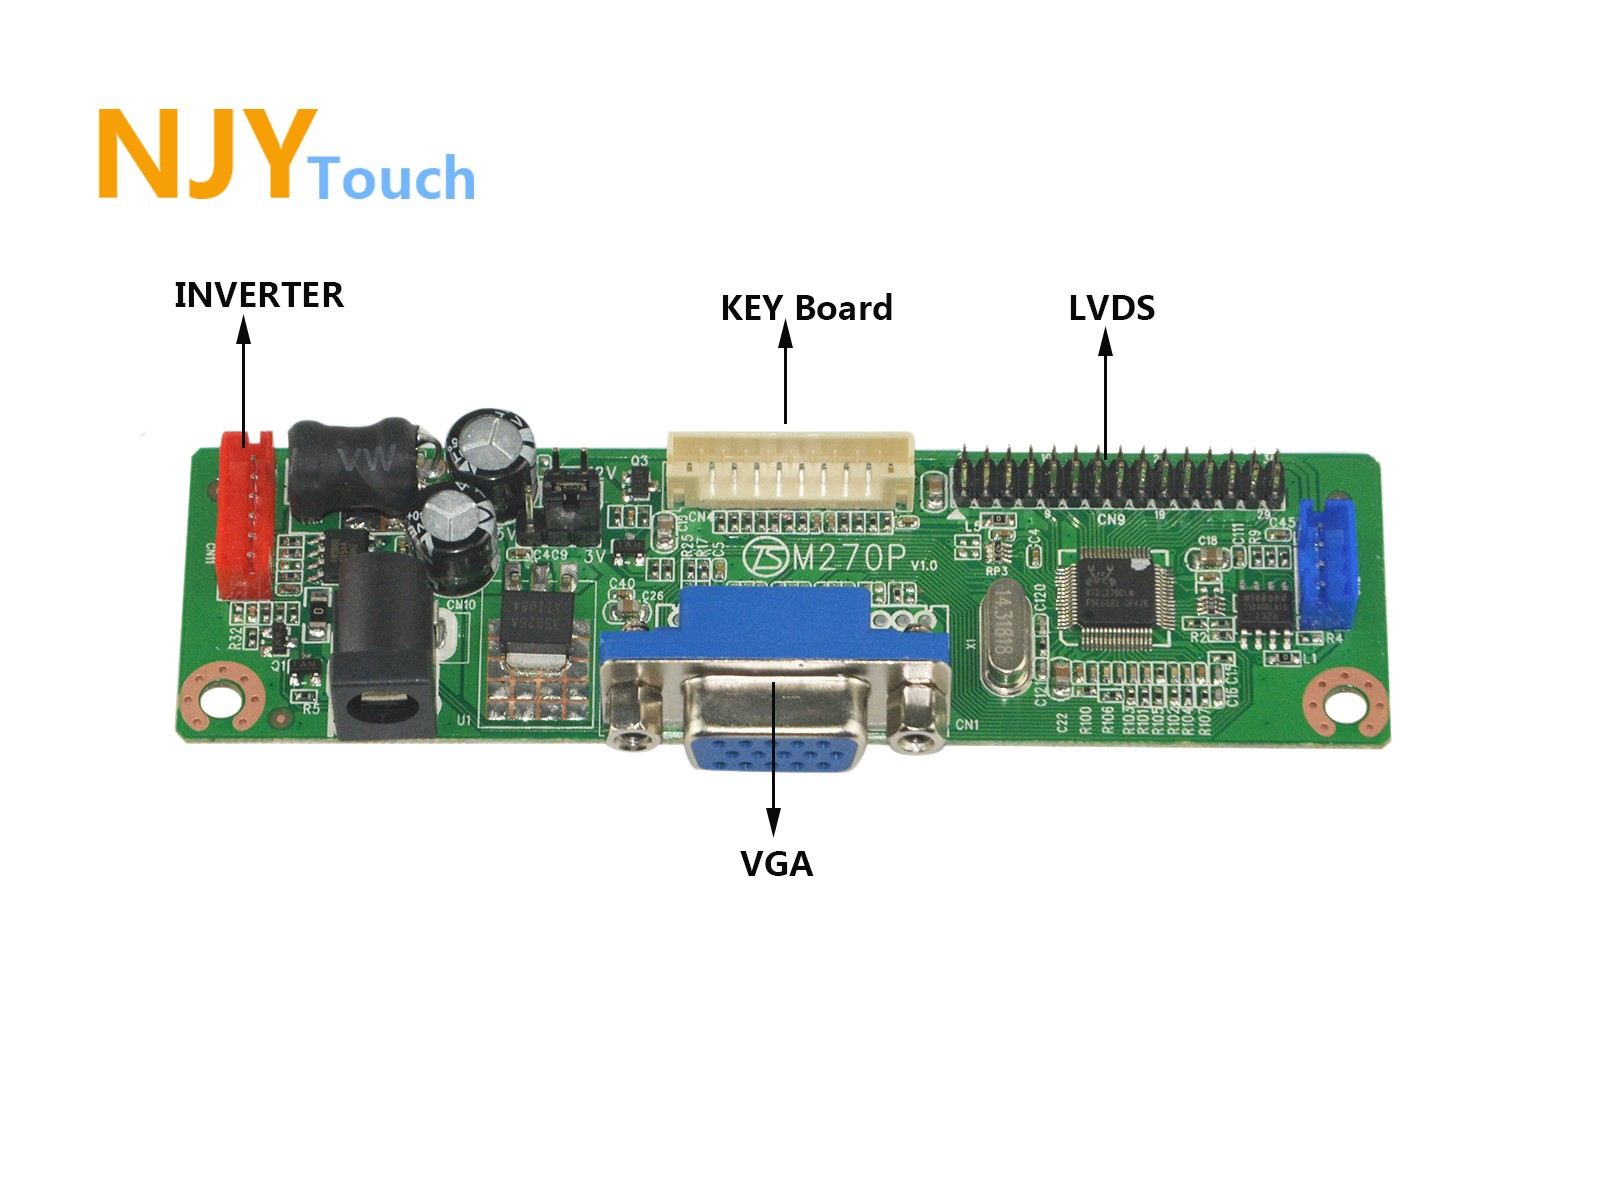 NJYTouch V.M70A VGA Driver Controller Board Kit For LP154W01 B154EW08 1280x800 LCD Screen